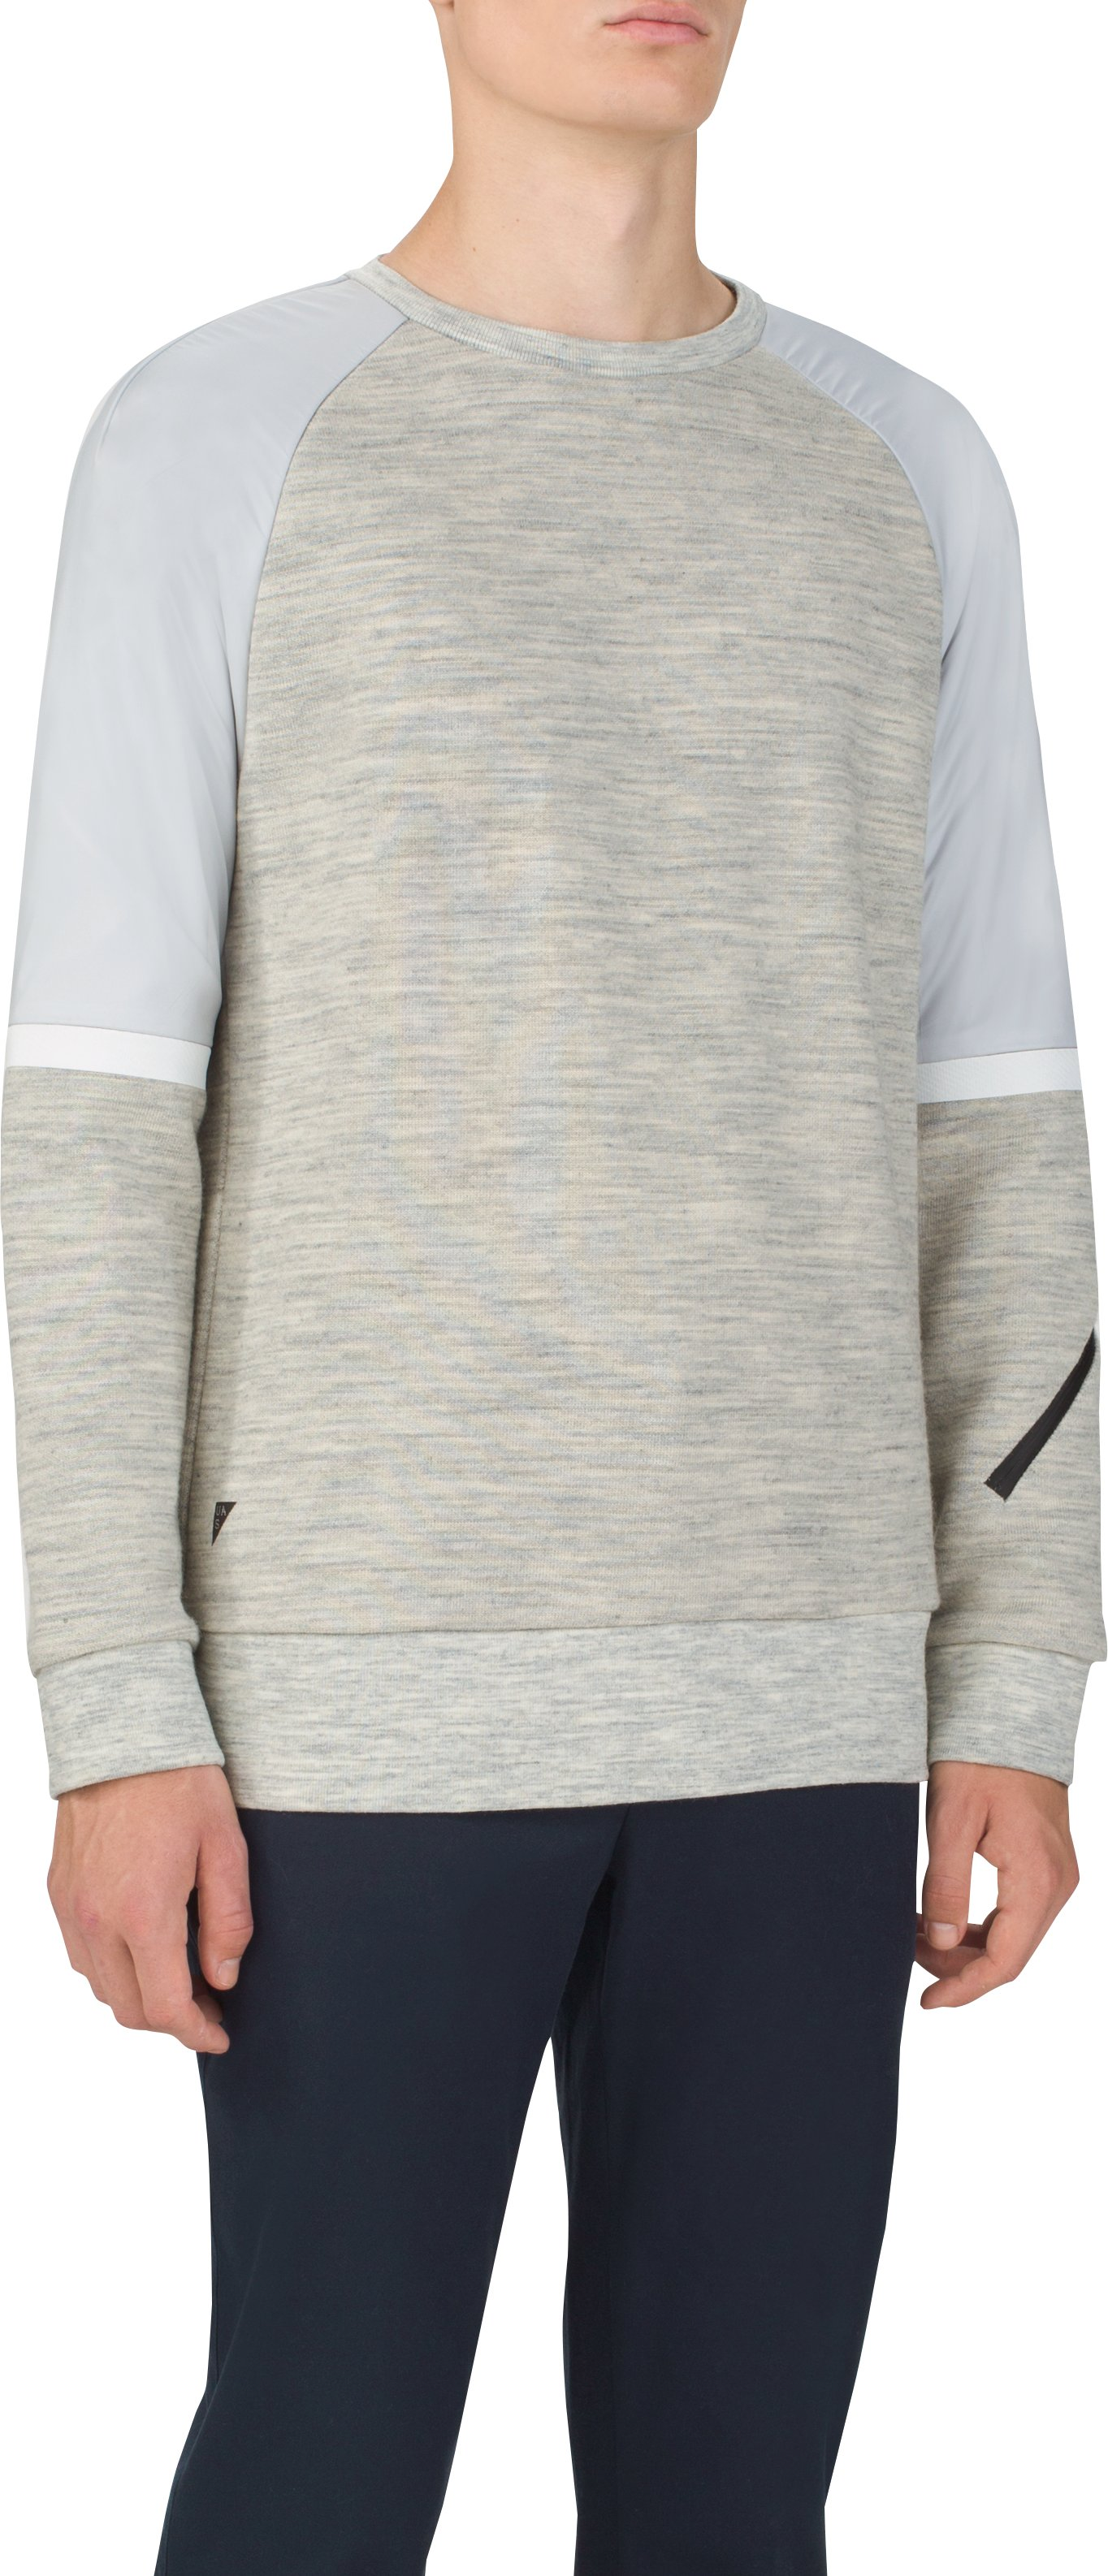 Men's UAS Pivot Terry Sweatshirt, Light Gray